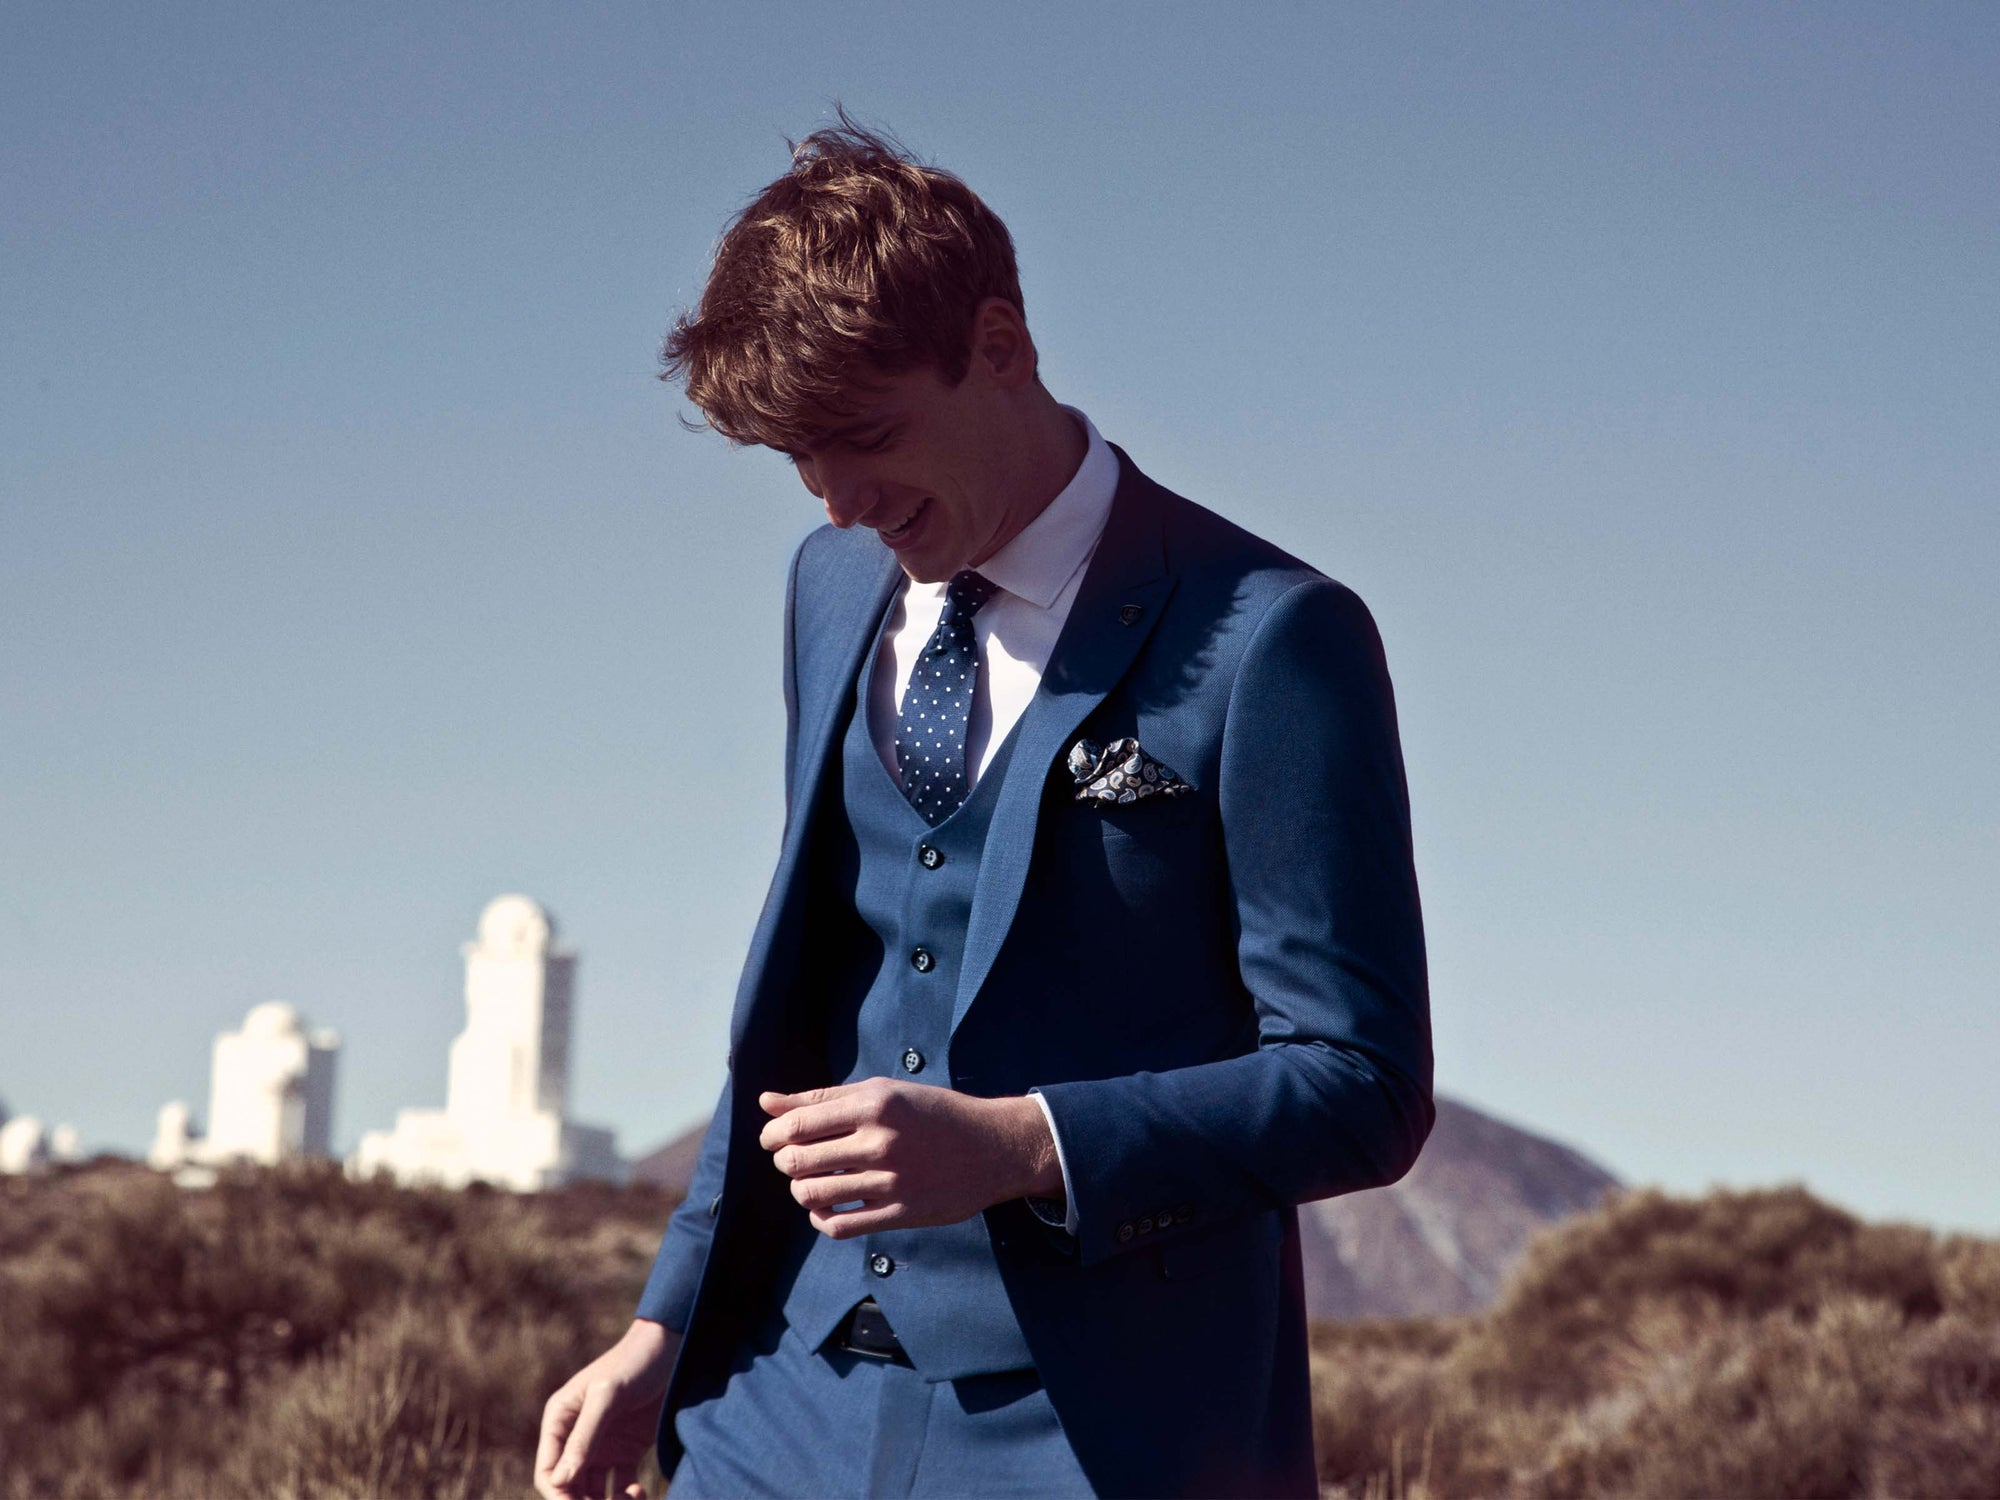 Petrol Navy Suit By Benetti Menswear